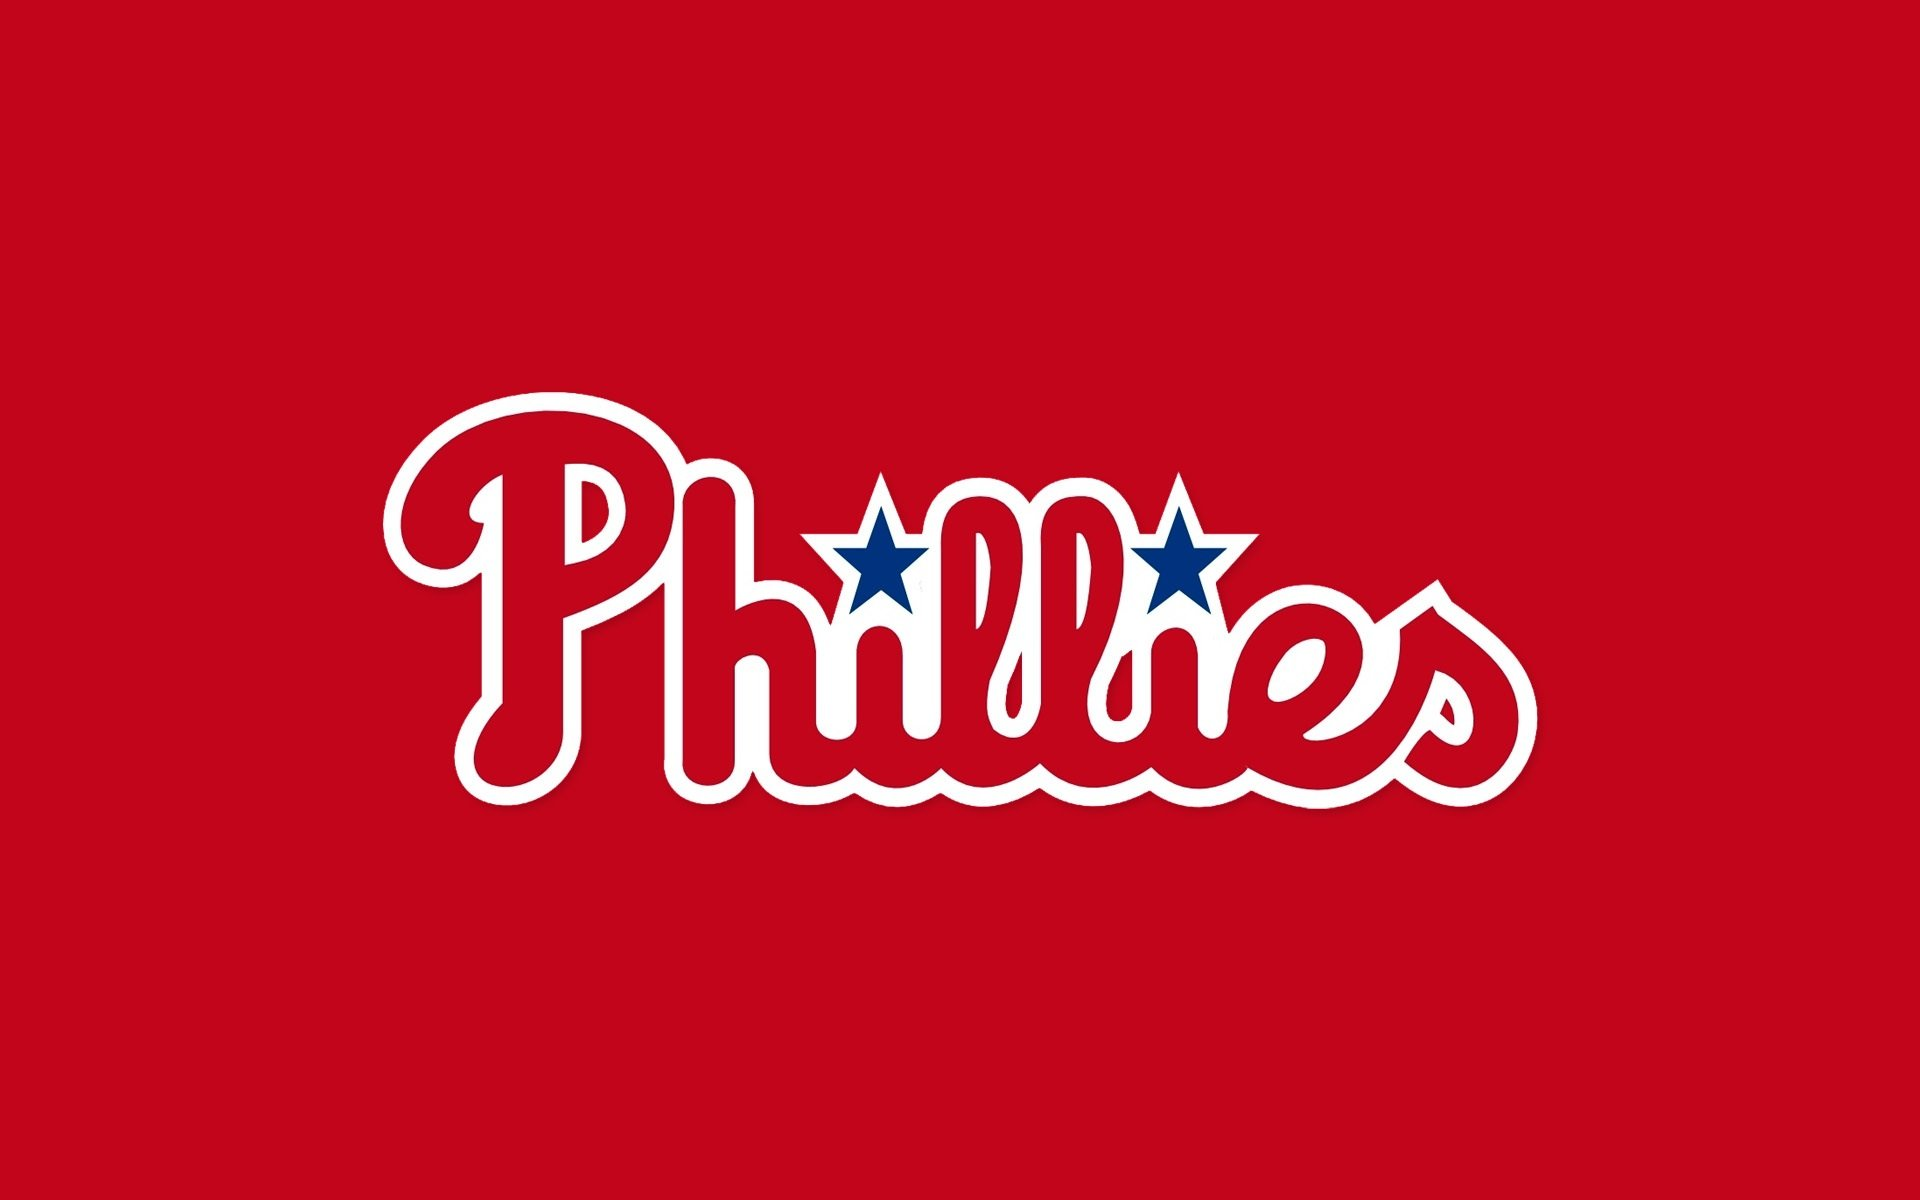 Download hd 1920x1200 Philadelphia Phillies PC background ID:193088 for free